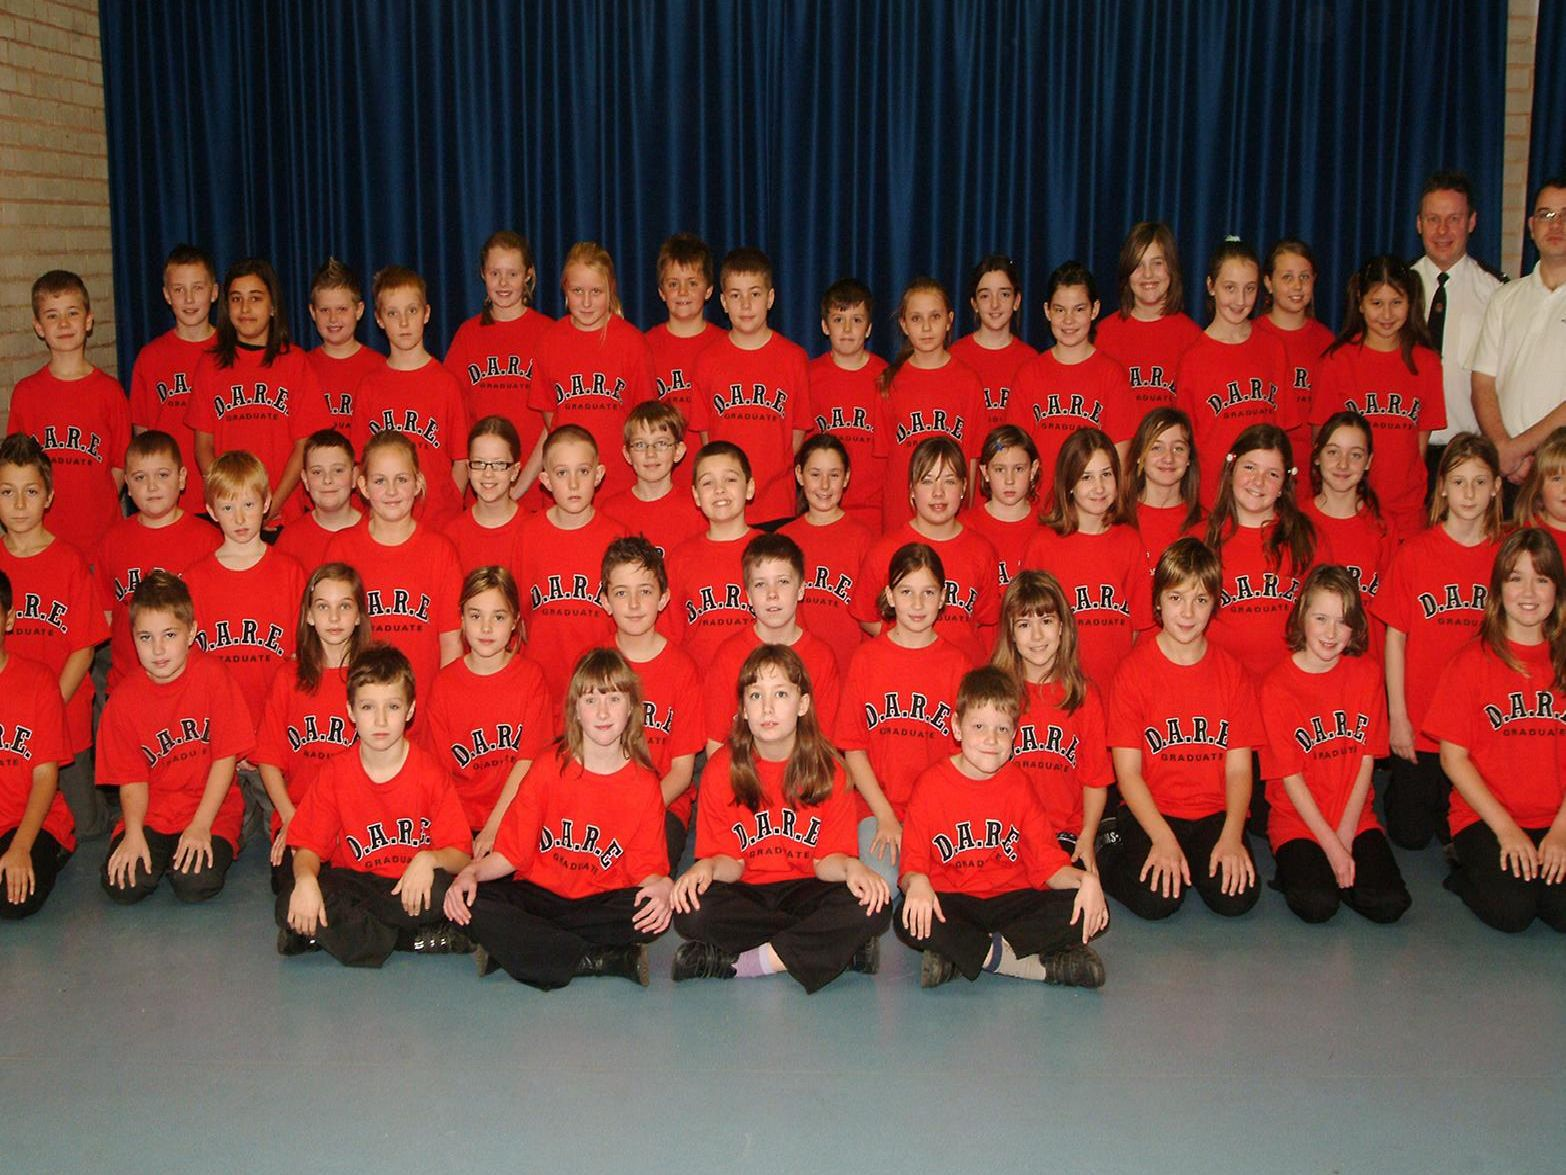 2007: A fantastic nostlagic group shot featuring pupils from Prospect Primary School, Maple Drive, Worksop, during their DARE graduation. Are you on this picture?